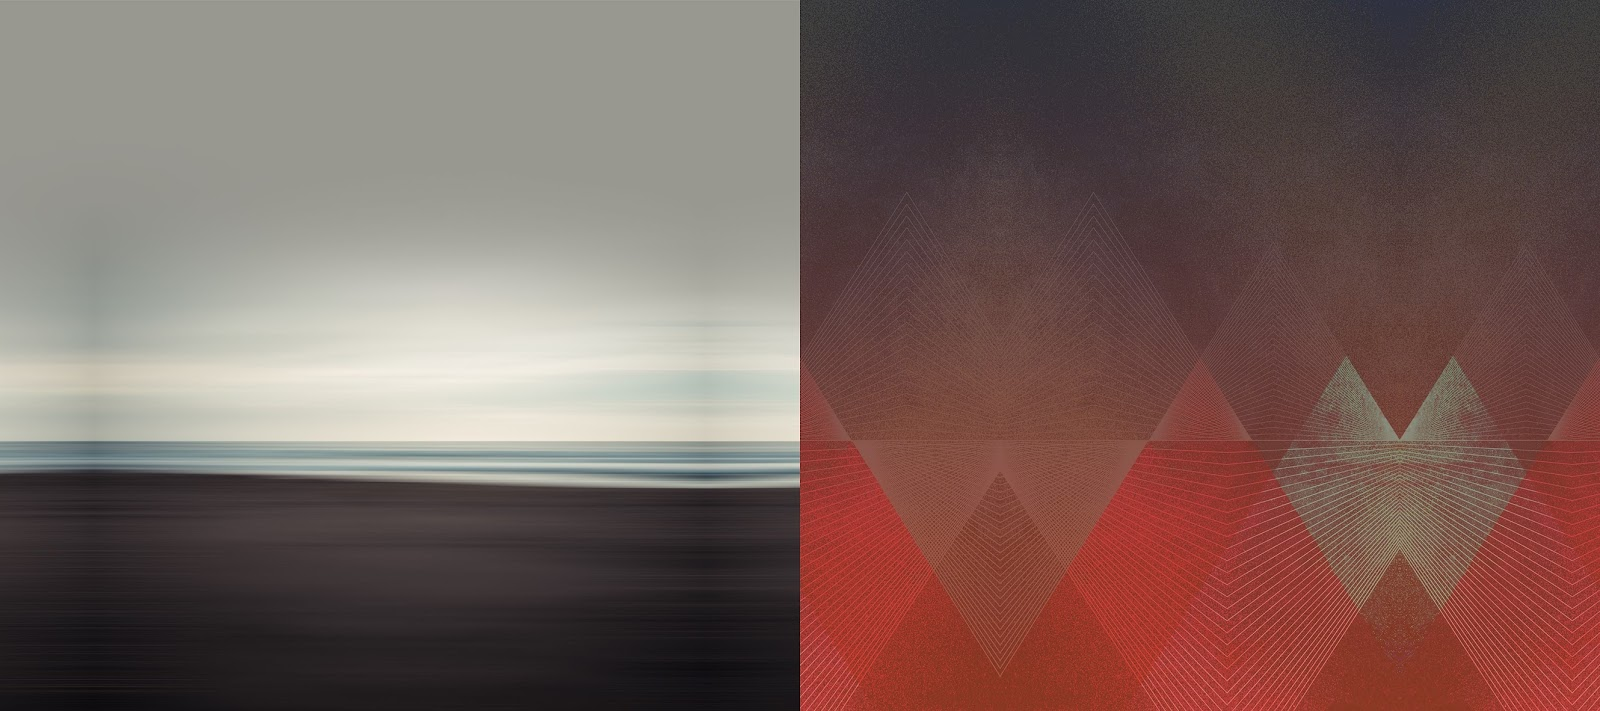 Android Revolution | Mobile Device Technologies: HTC Sense 7.0 - Wallpapers